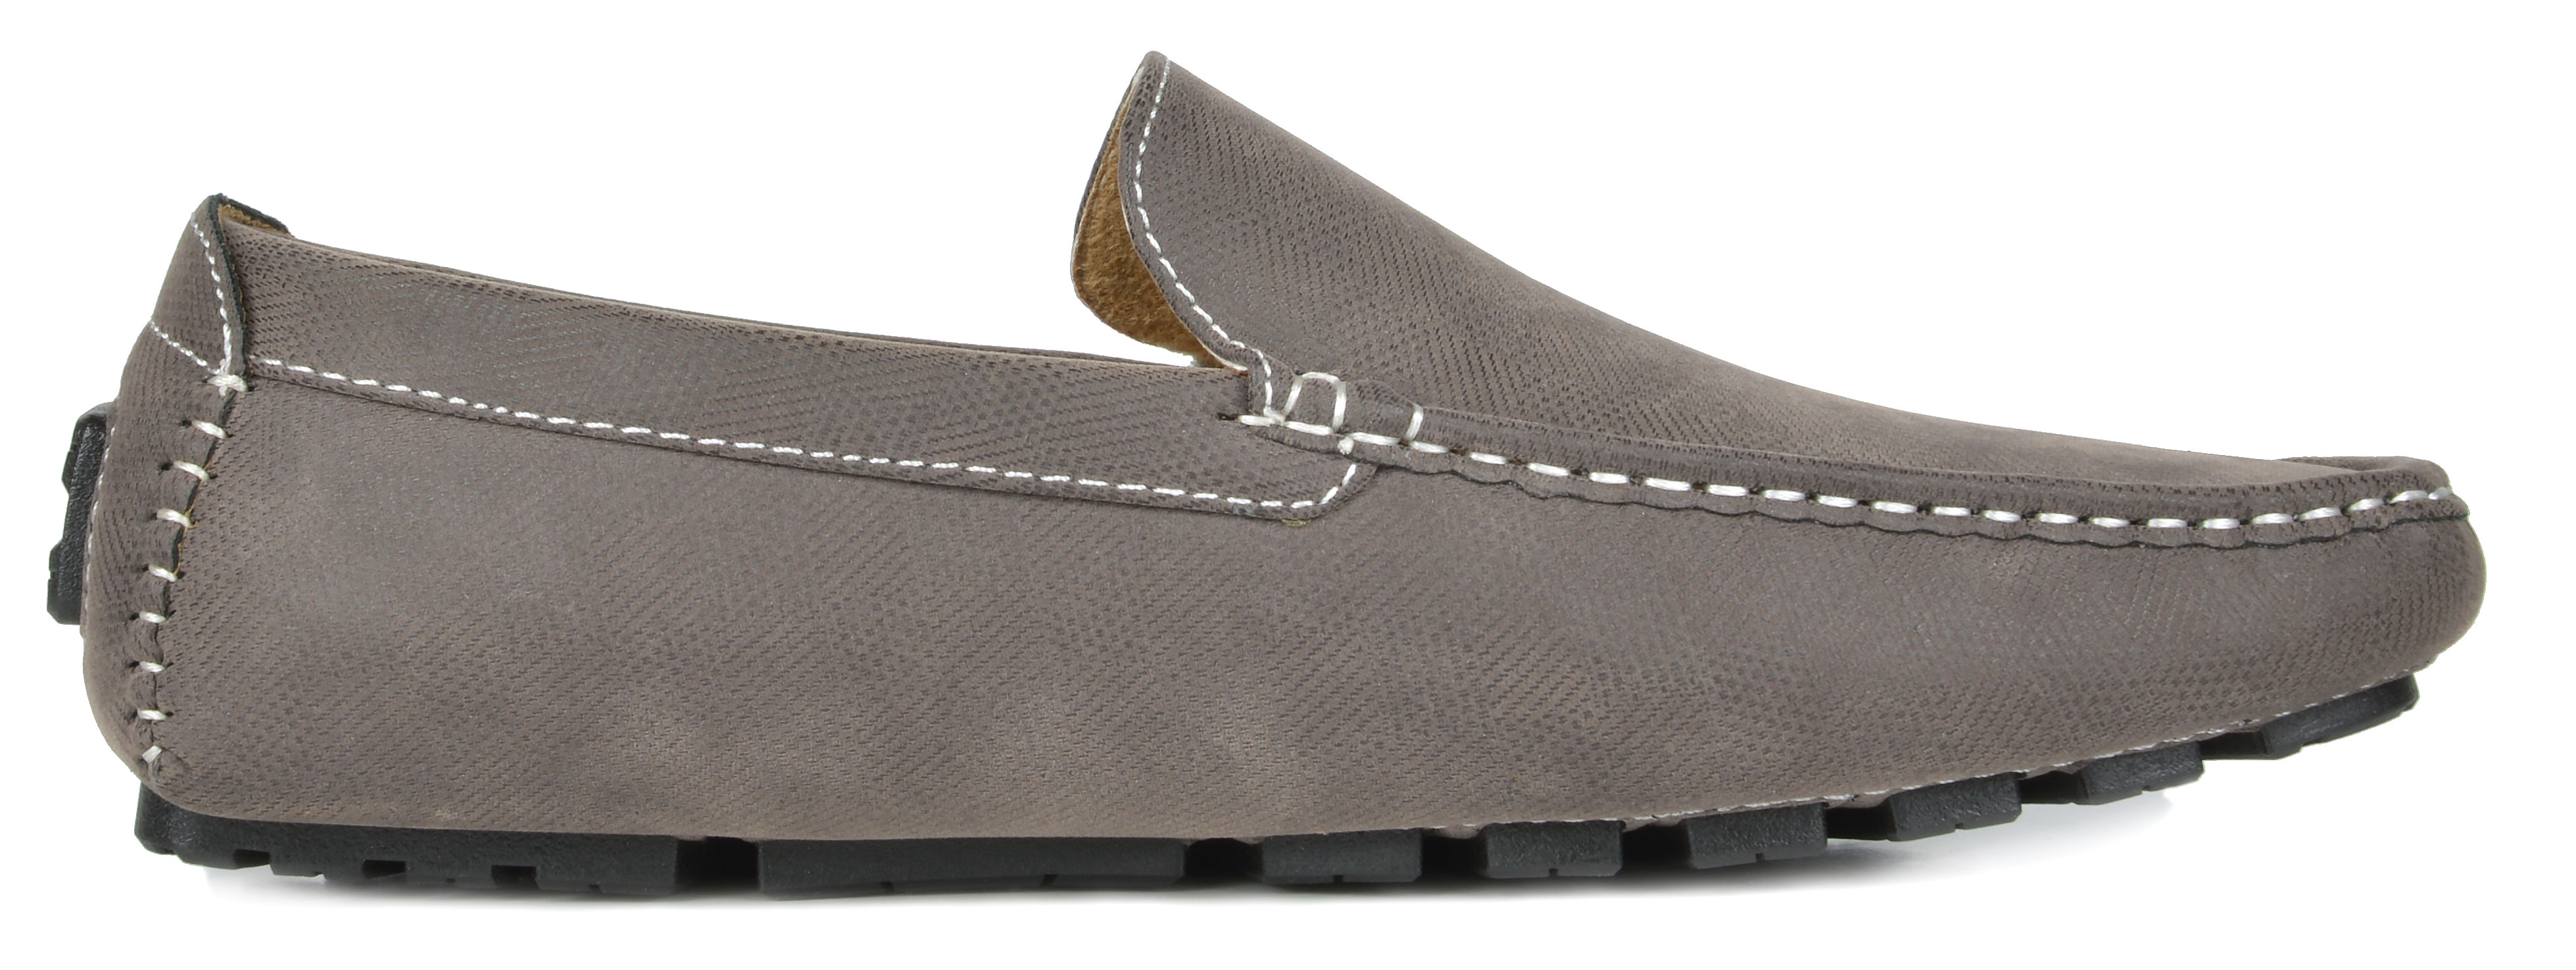 Bruno-Marc-Men-039-s-New-Classic-Fashion-Slip-on-Driving-Casual-Loafers-Boat-Shoes thumbnail 128